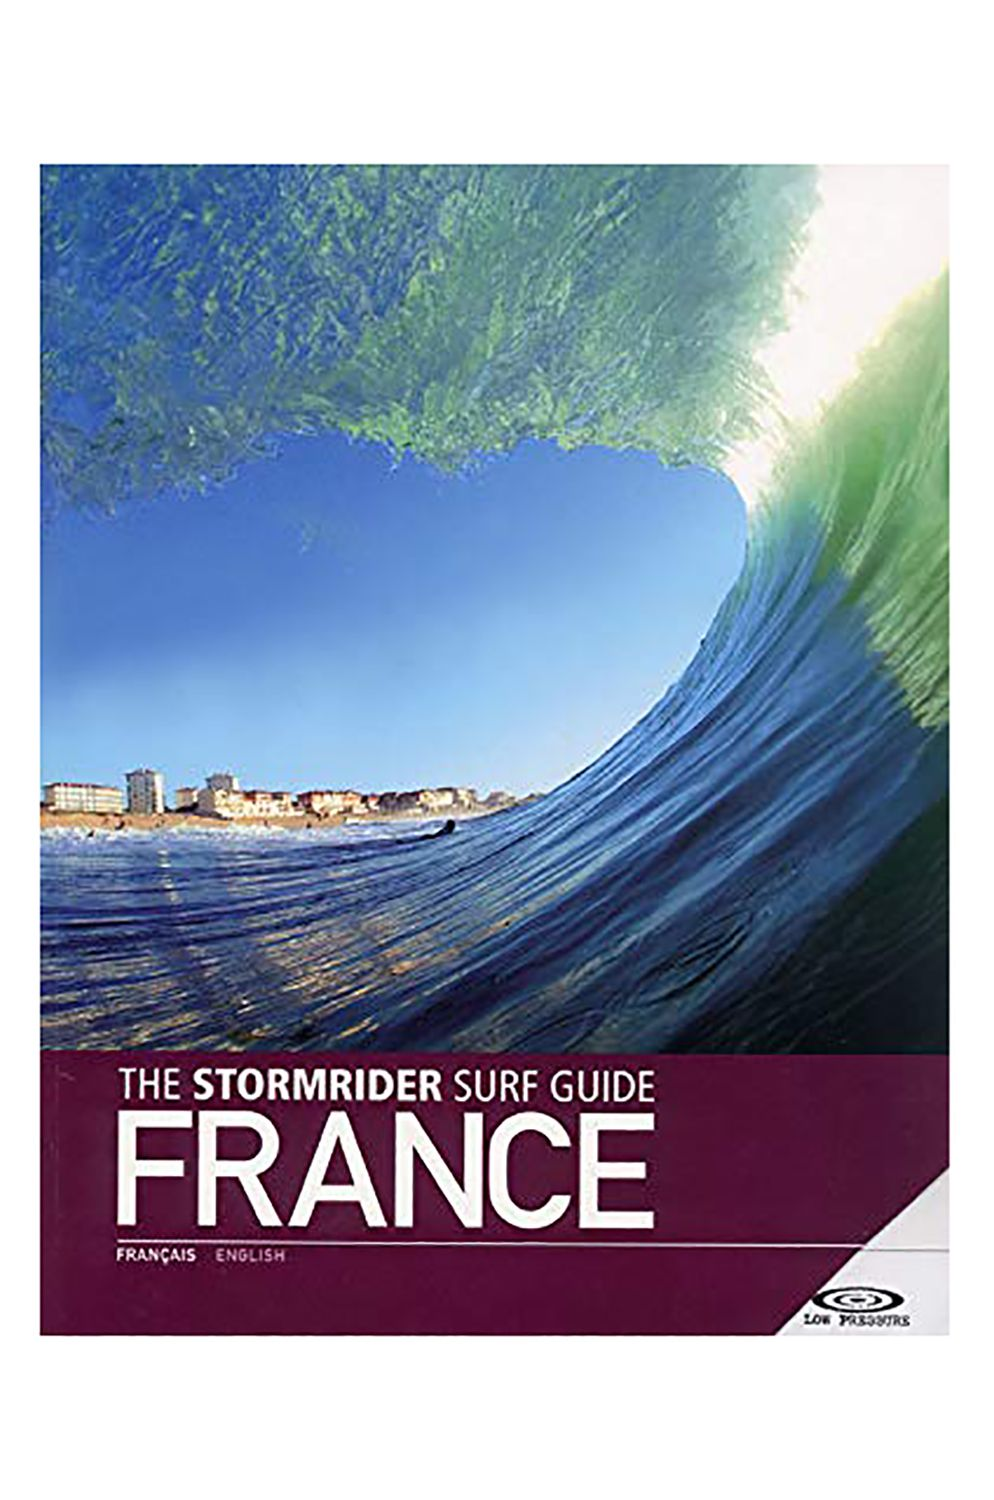 Stormrider Book GUIDE EDITION FRANCE Assorted